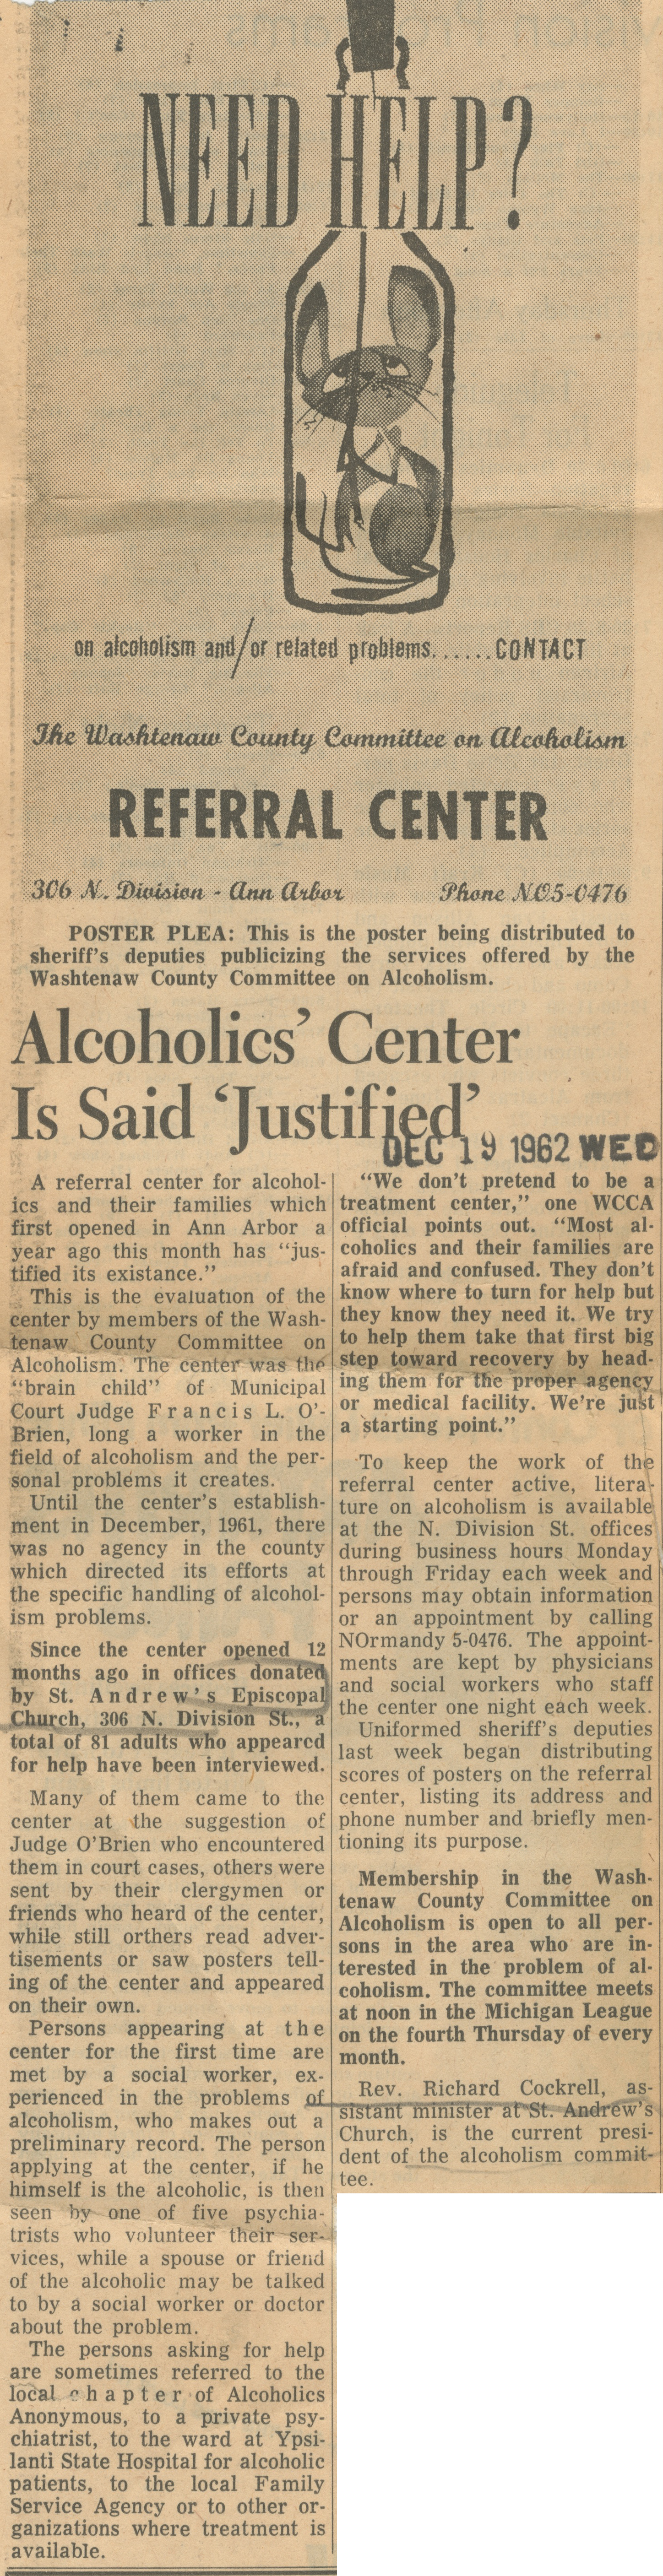 Alcoholics' Center Is Said 'Justified' image